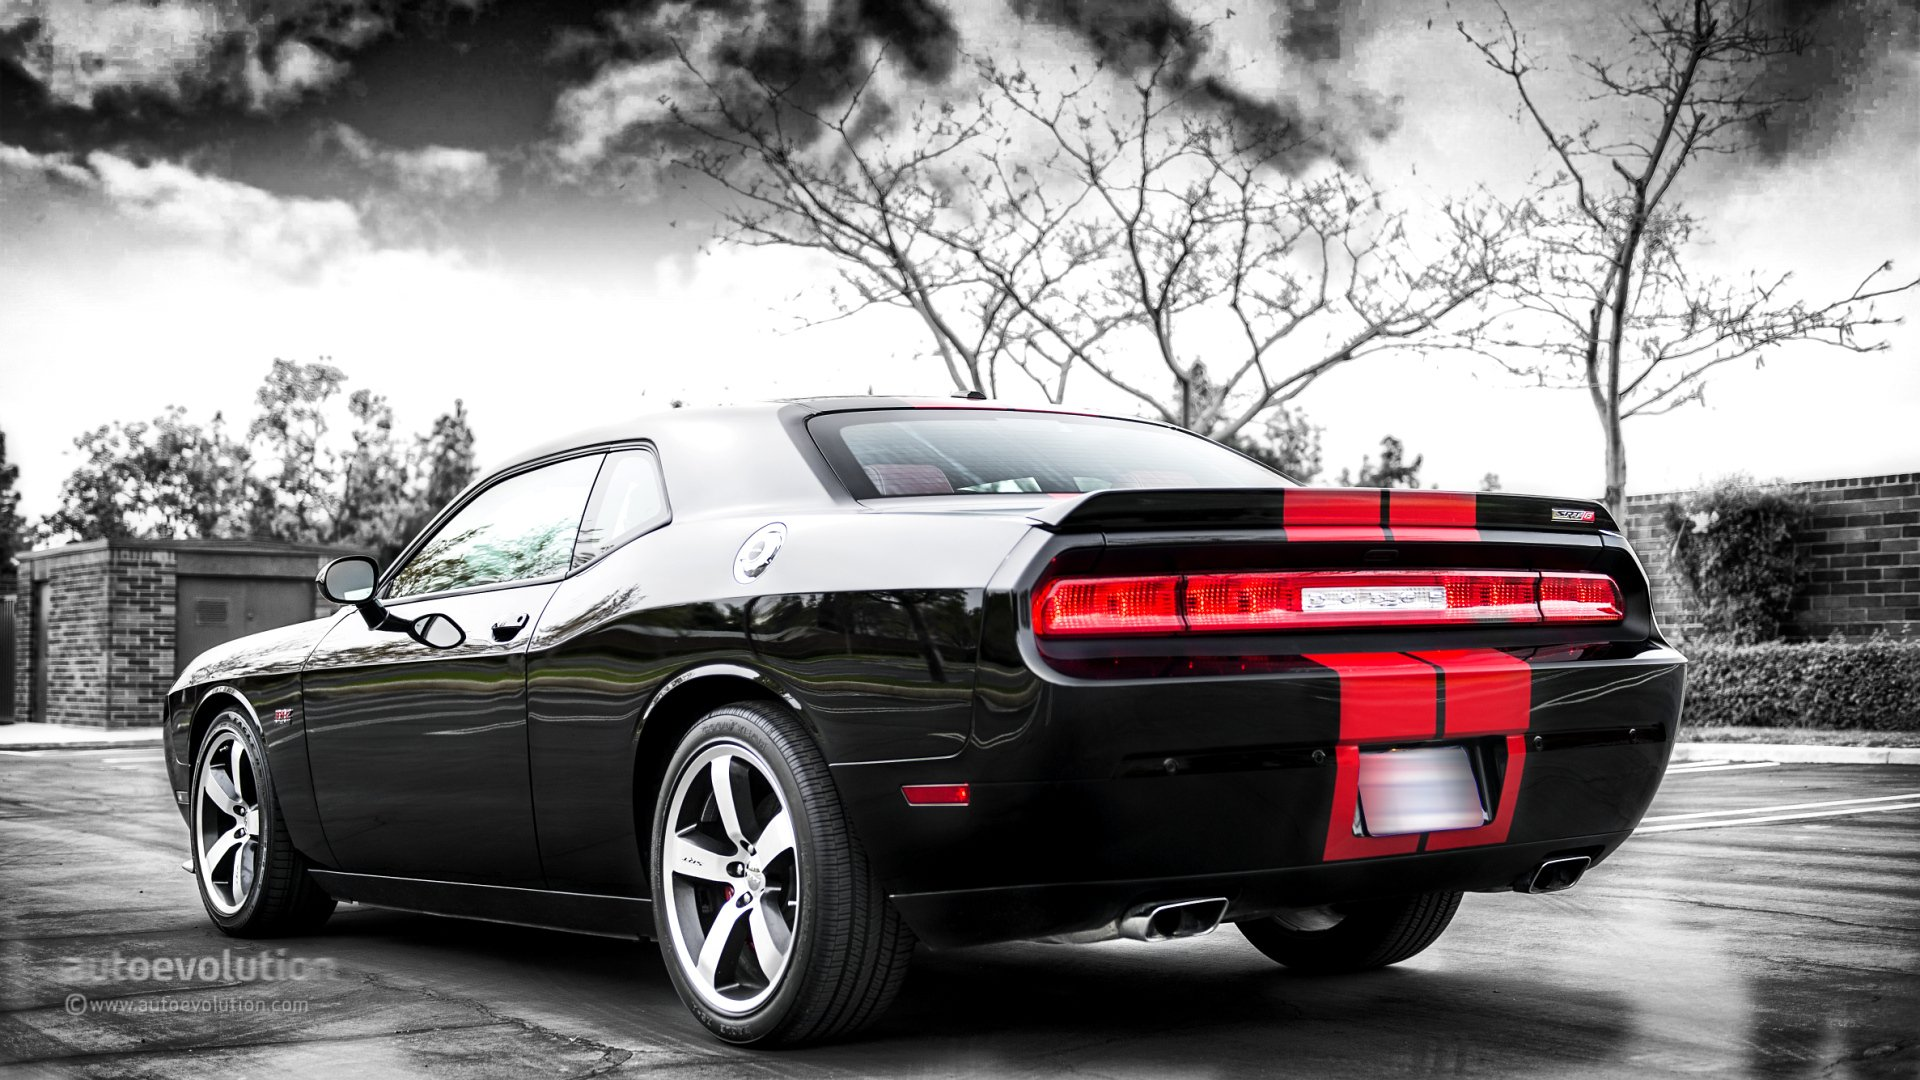 2014 dodge challenger srt8 wallpaper wallpapersafari. Black Bedroom Furniture Sets. Home Design Ideas